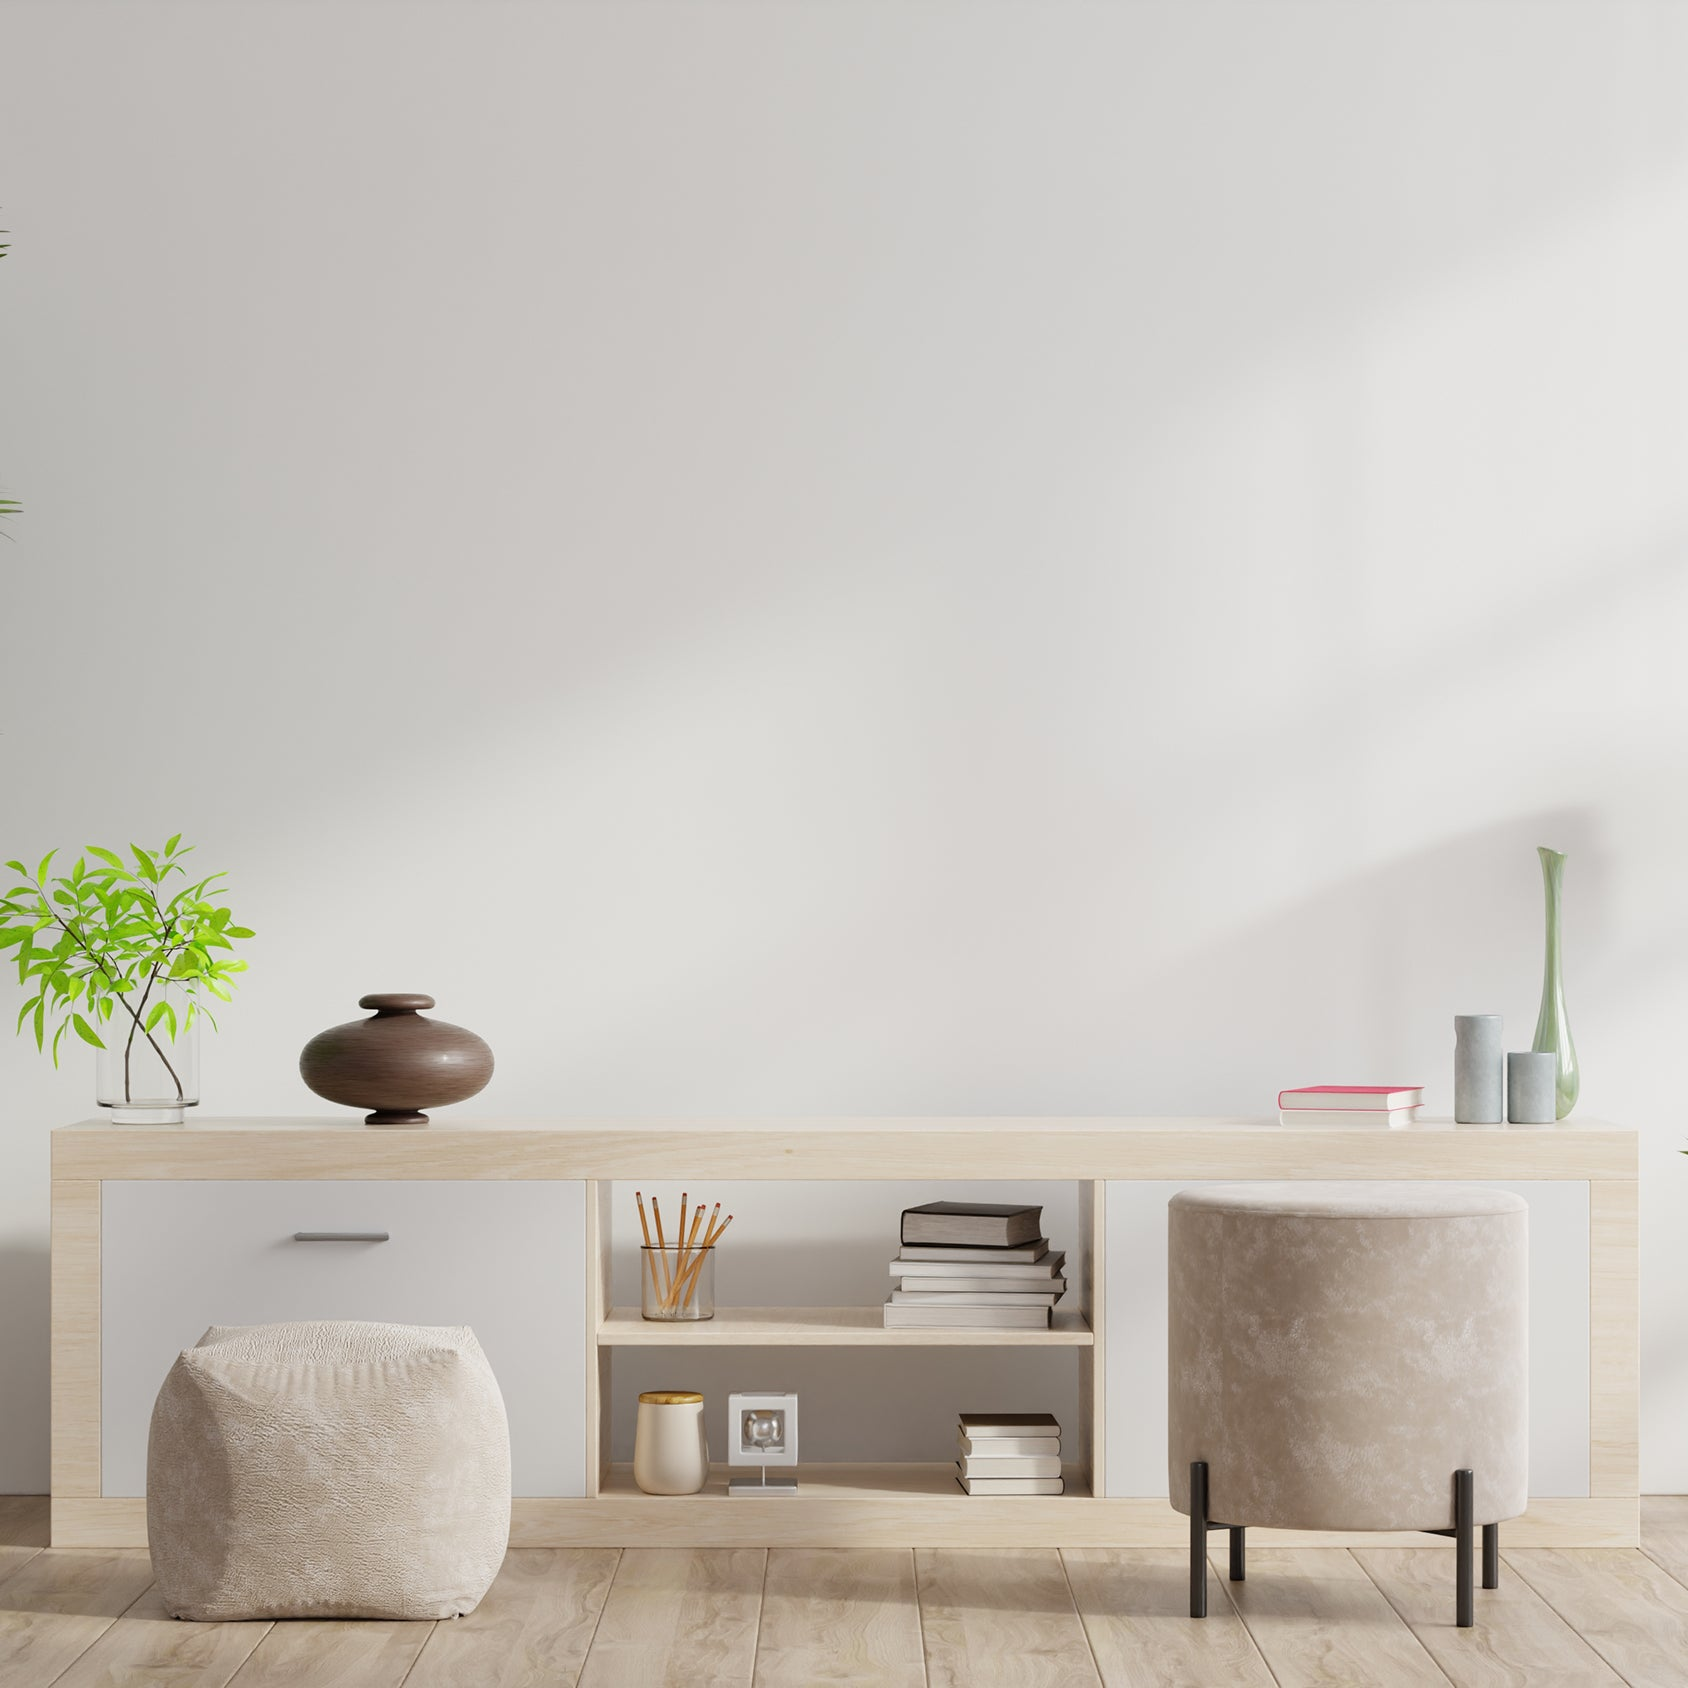 Furniture for home